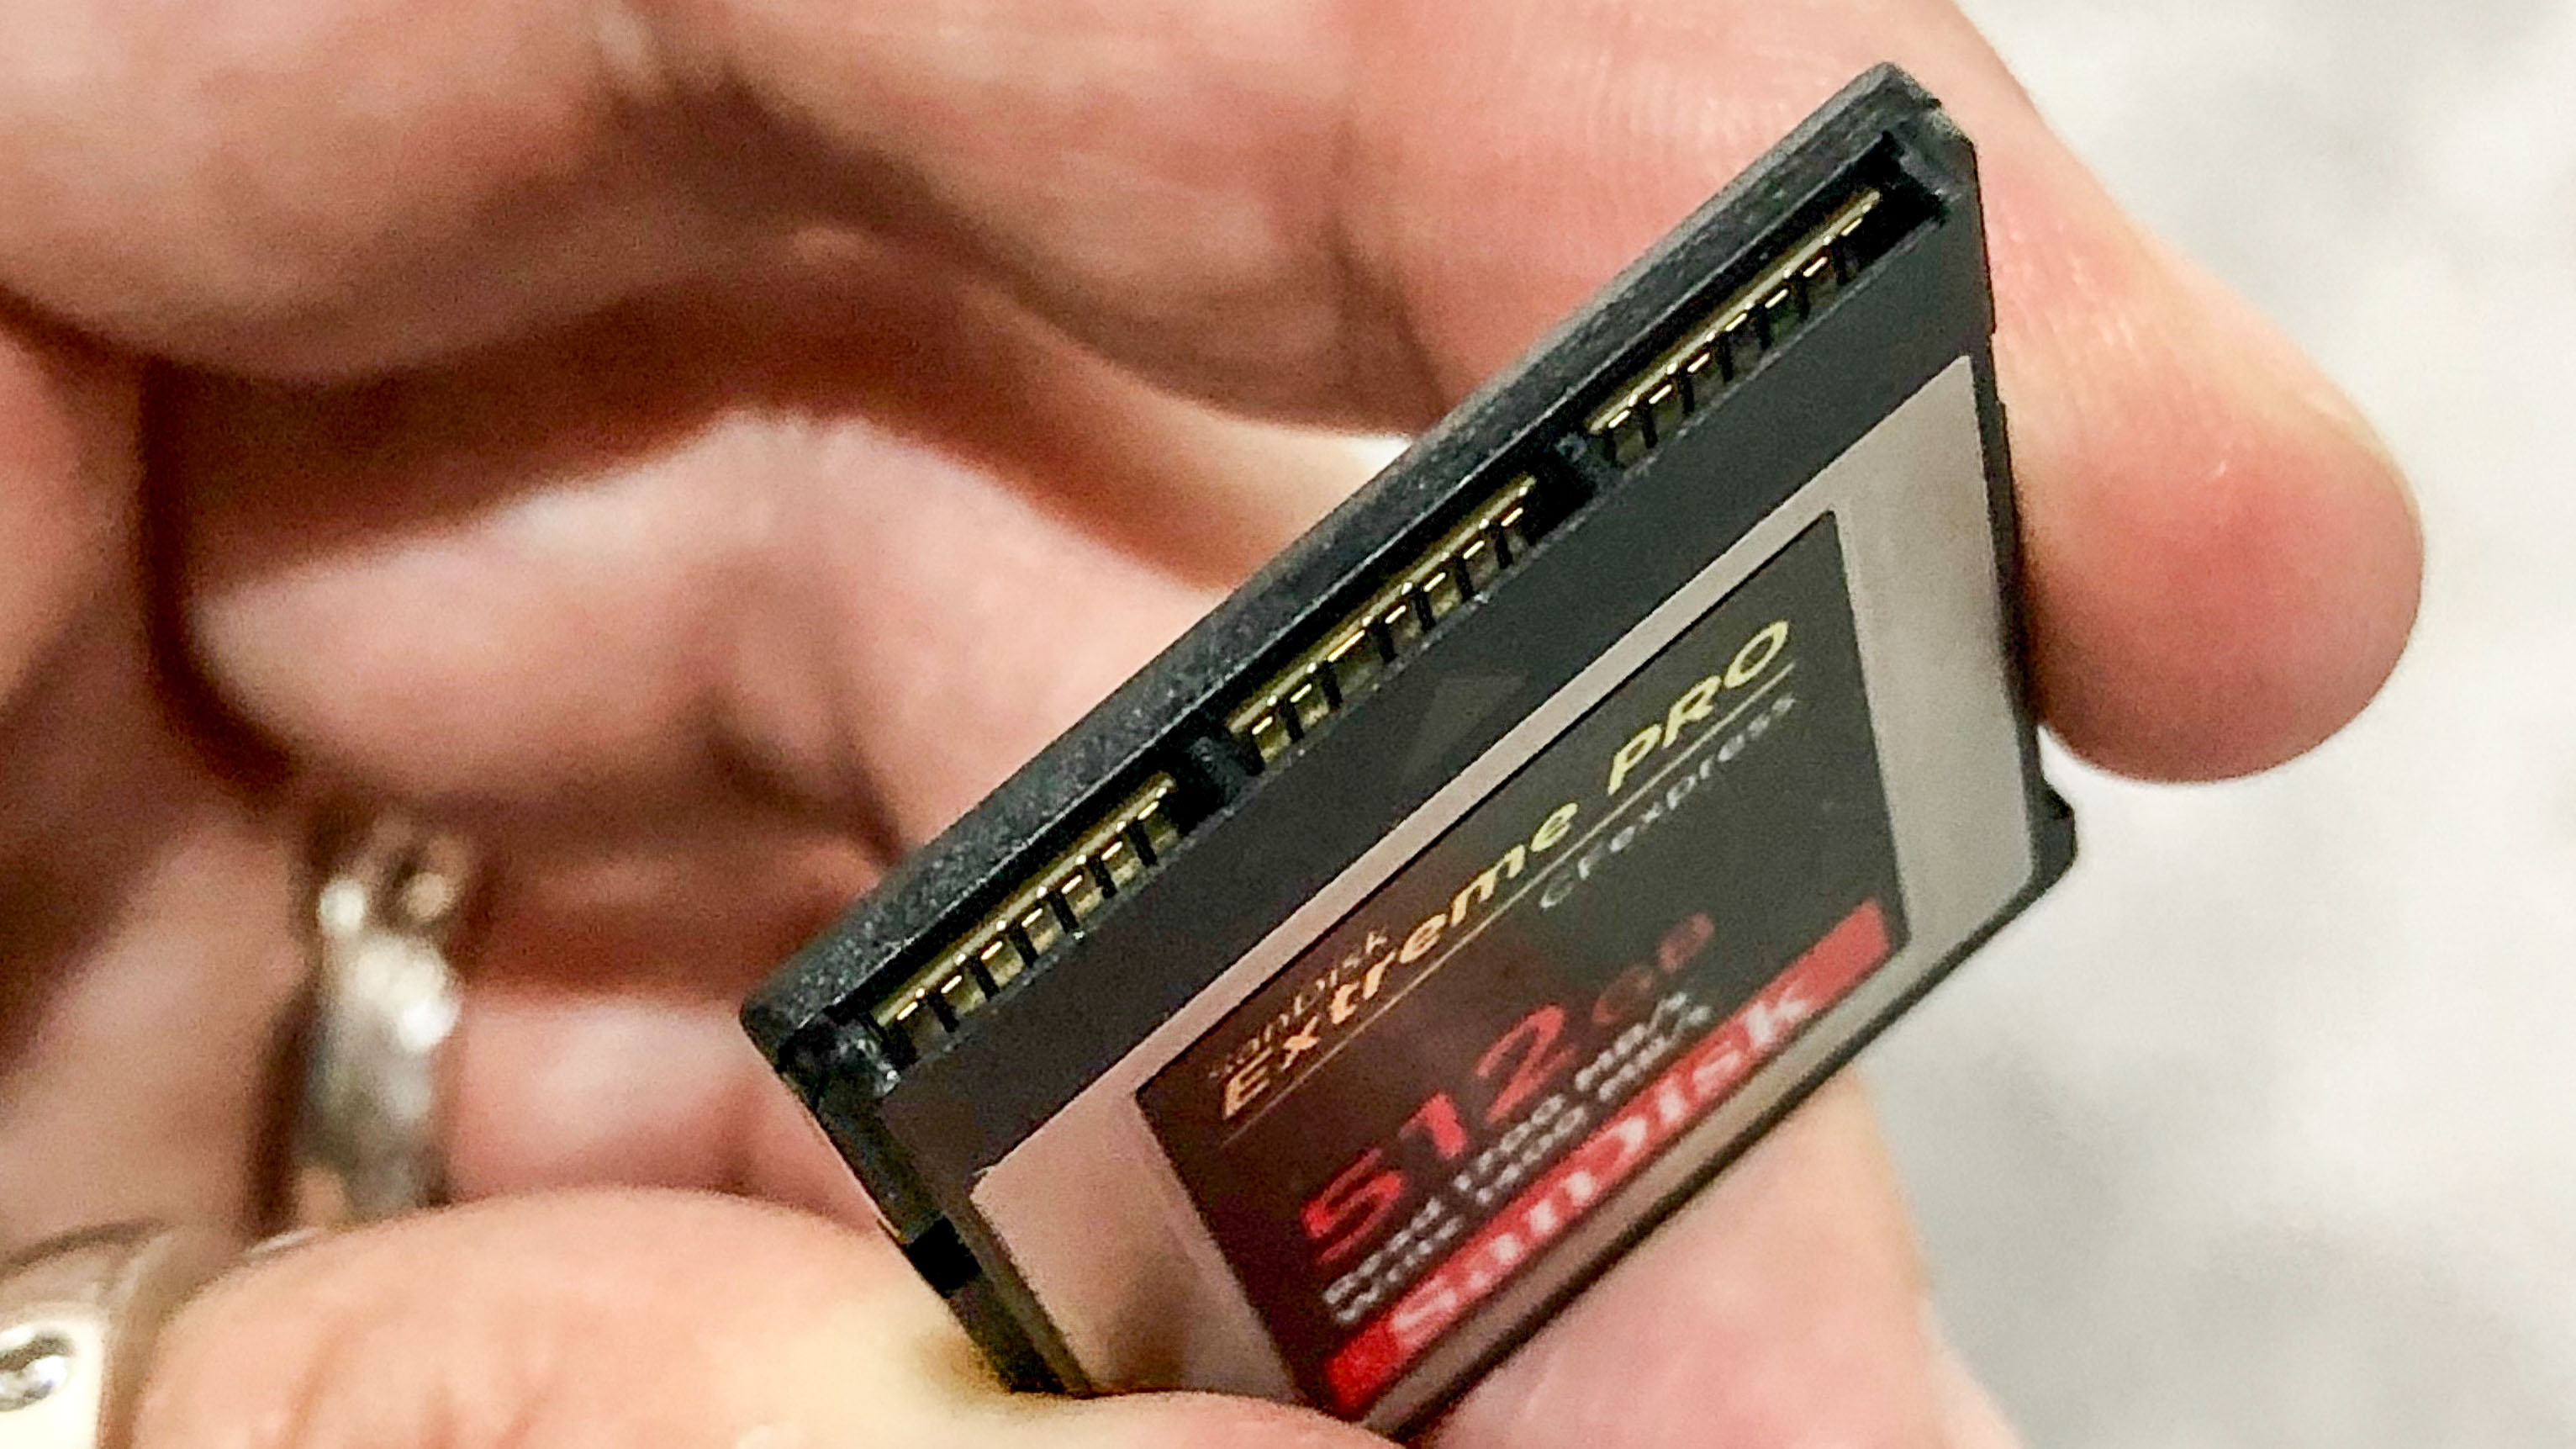 CFexpress cards are here! Canon is first to use SanDisk's superfast memory cards | Digital Camera World